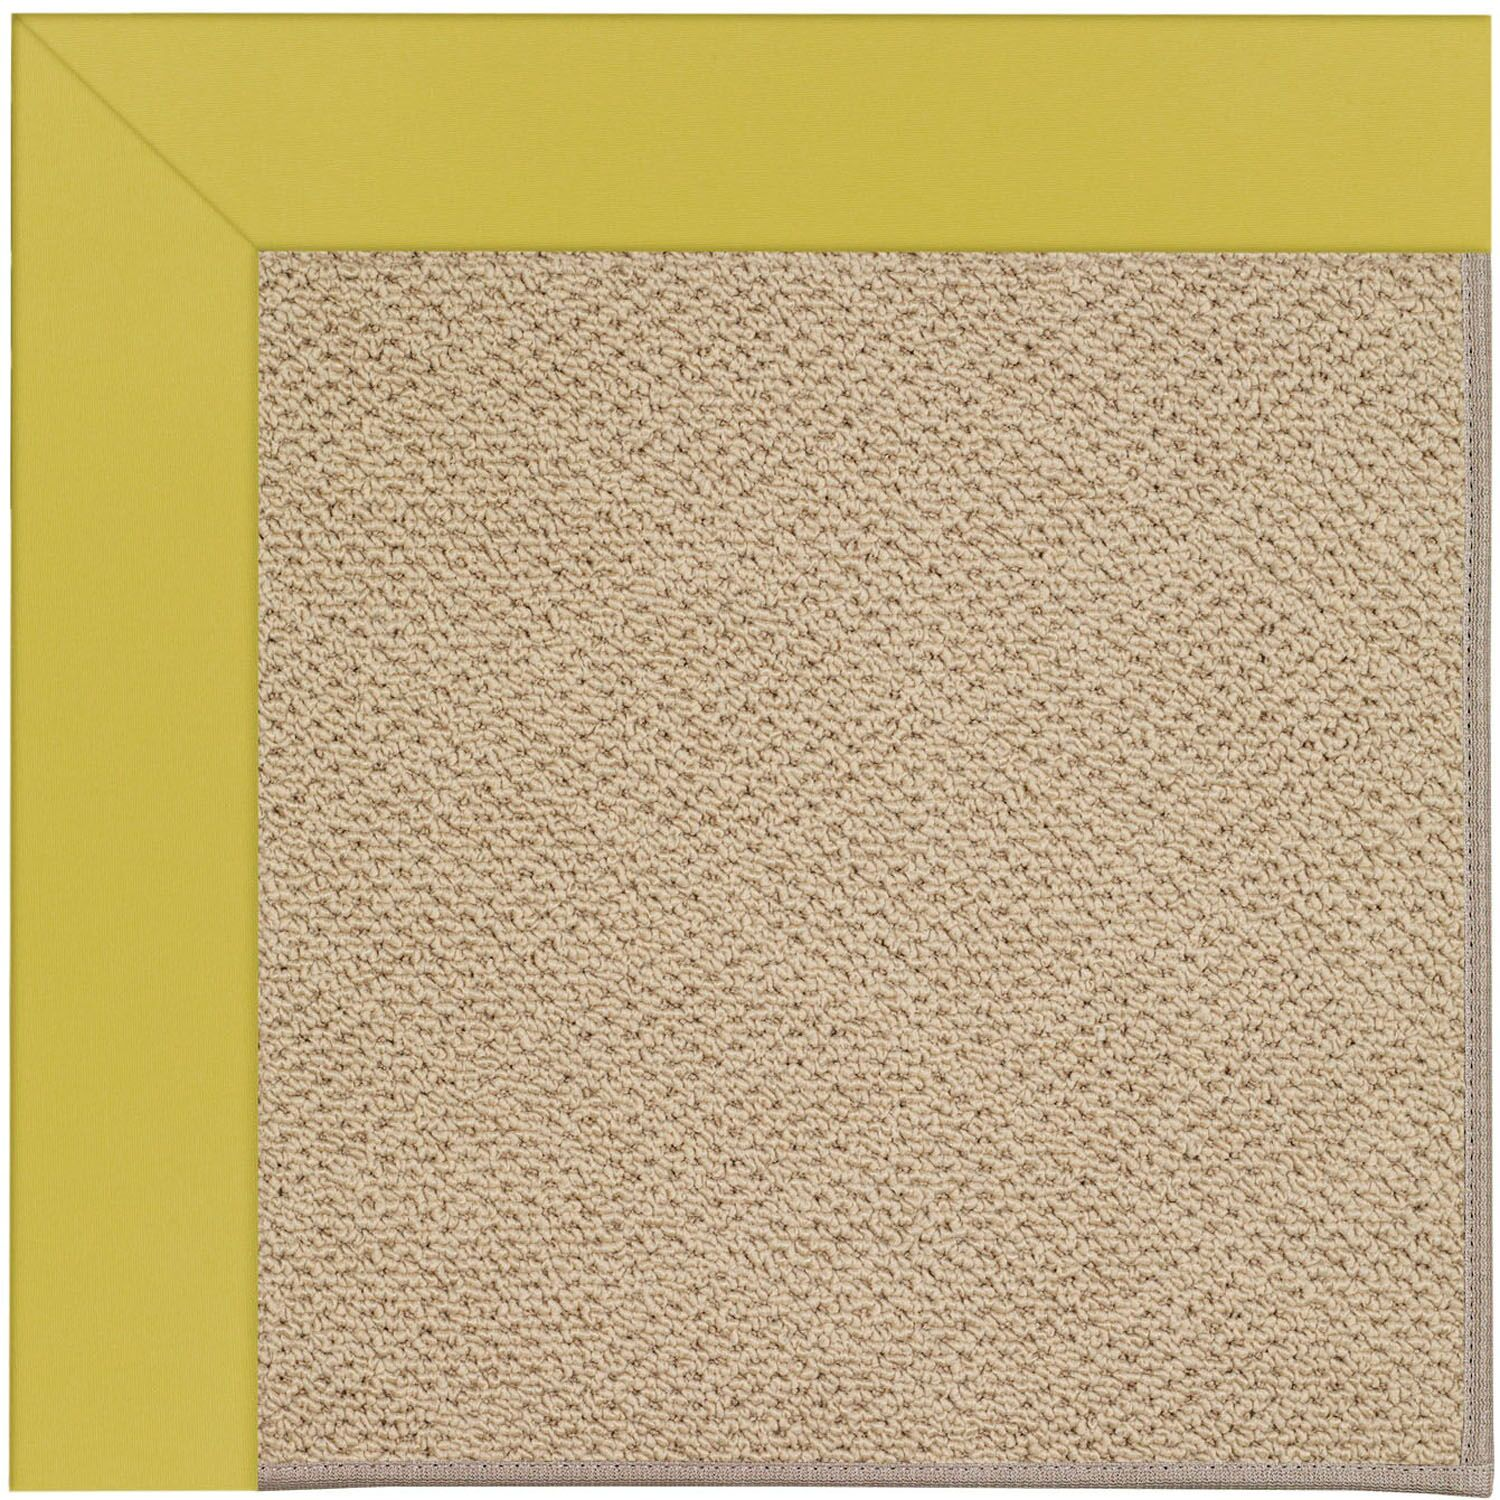 Lisle Machine Tufted Citronella/Brown Indoor/Outdoor Area Rug Rug Size: Rectangle 12' x 15'